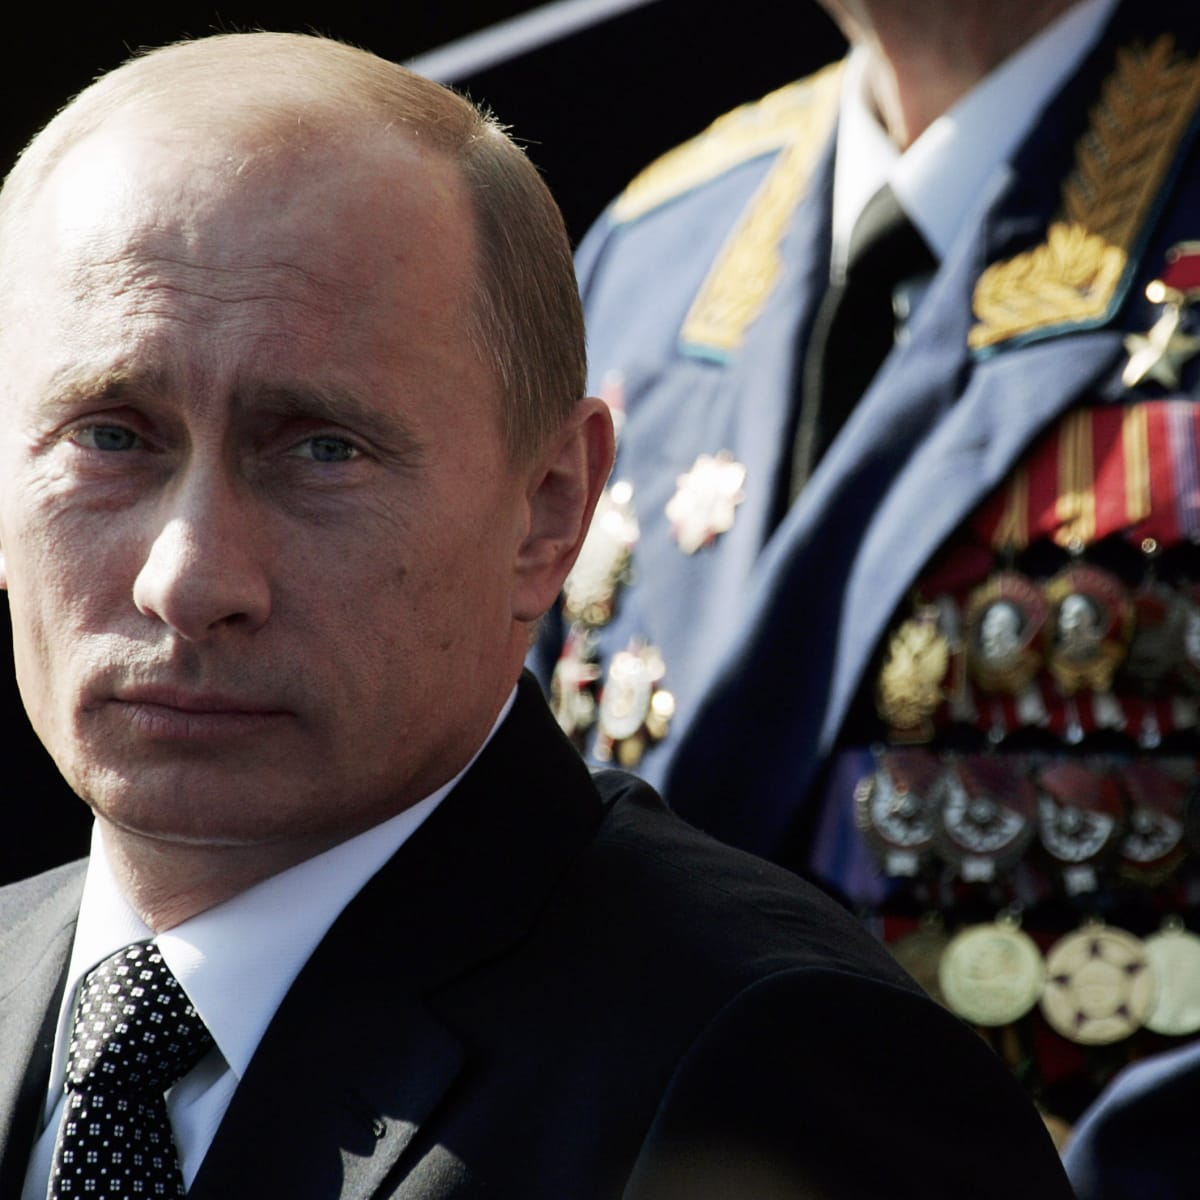 Putin S Calculated Disinterest In Commemorating A Revolution Pacific Standard